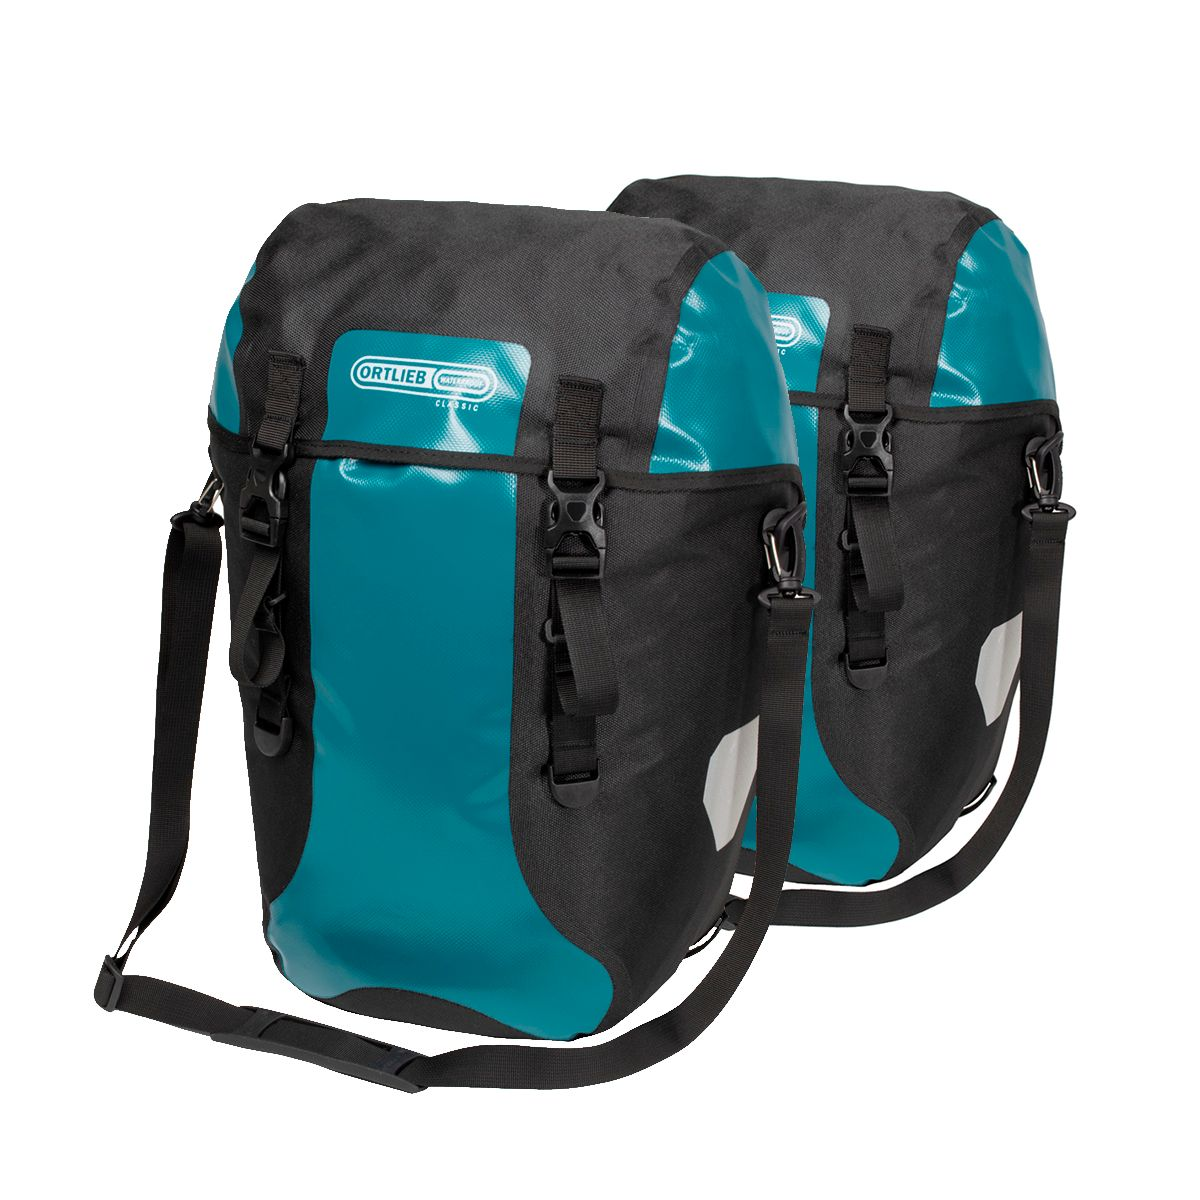 Bike-Packer CLASSIC set of two pannier bags